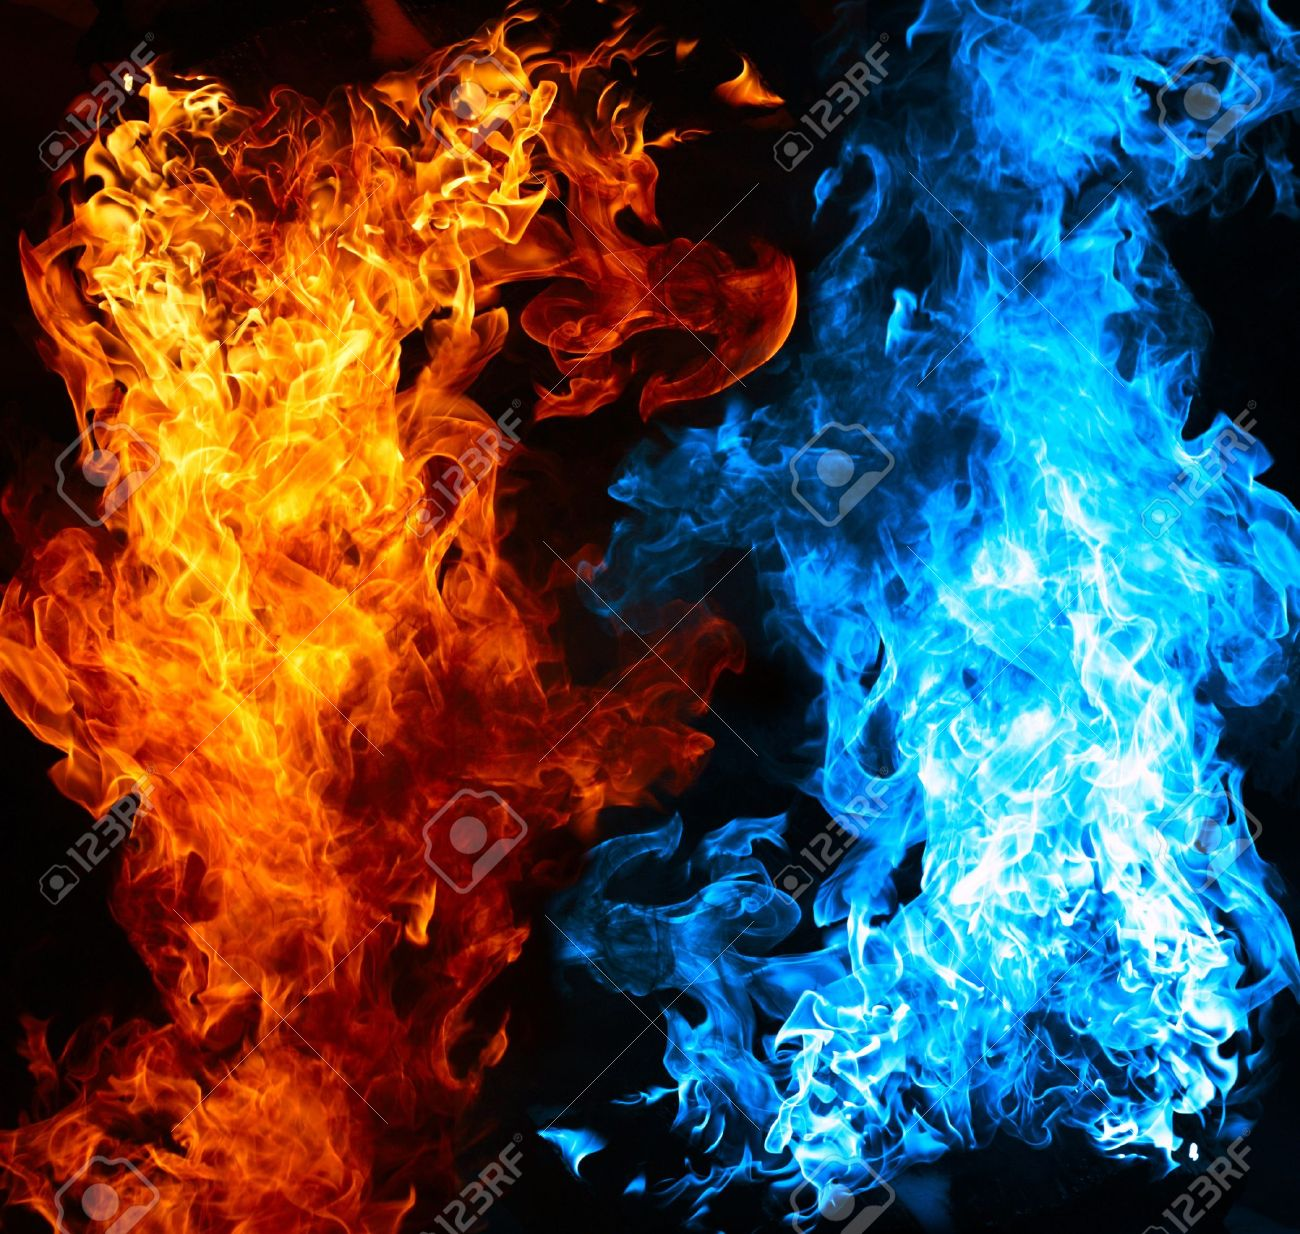 1300x1234 - Red and Blue Fire 3